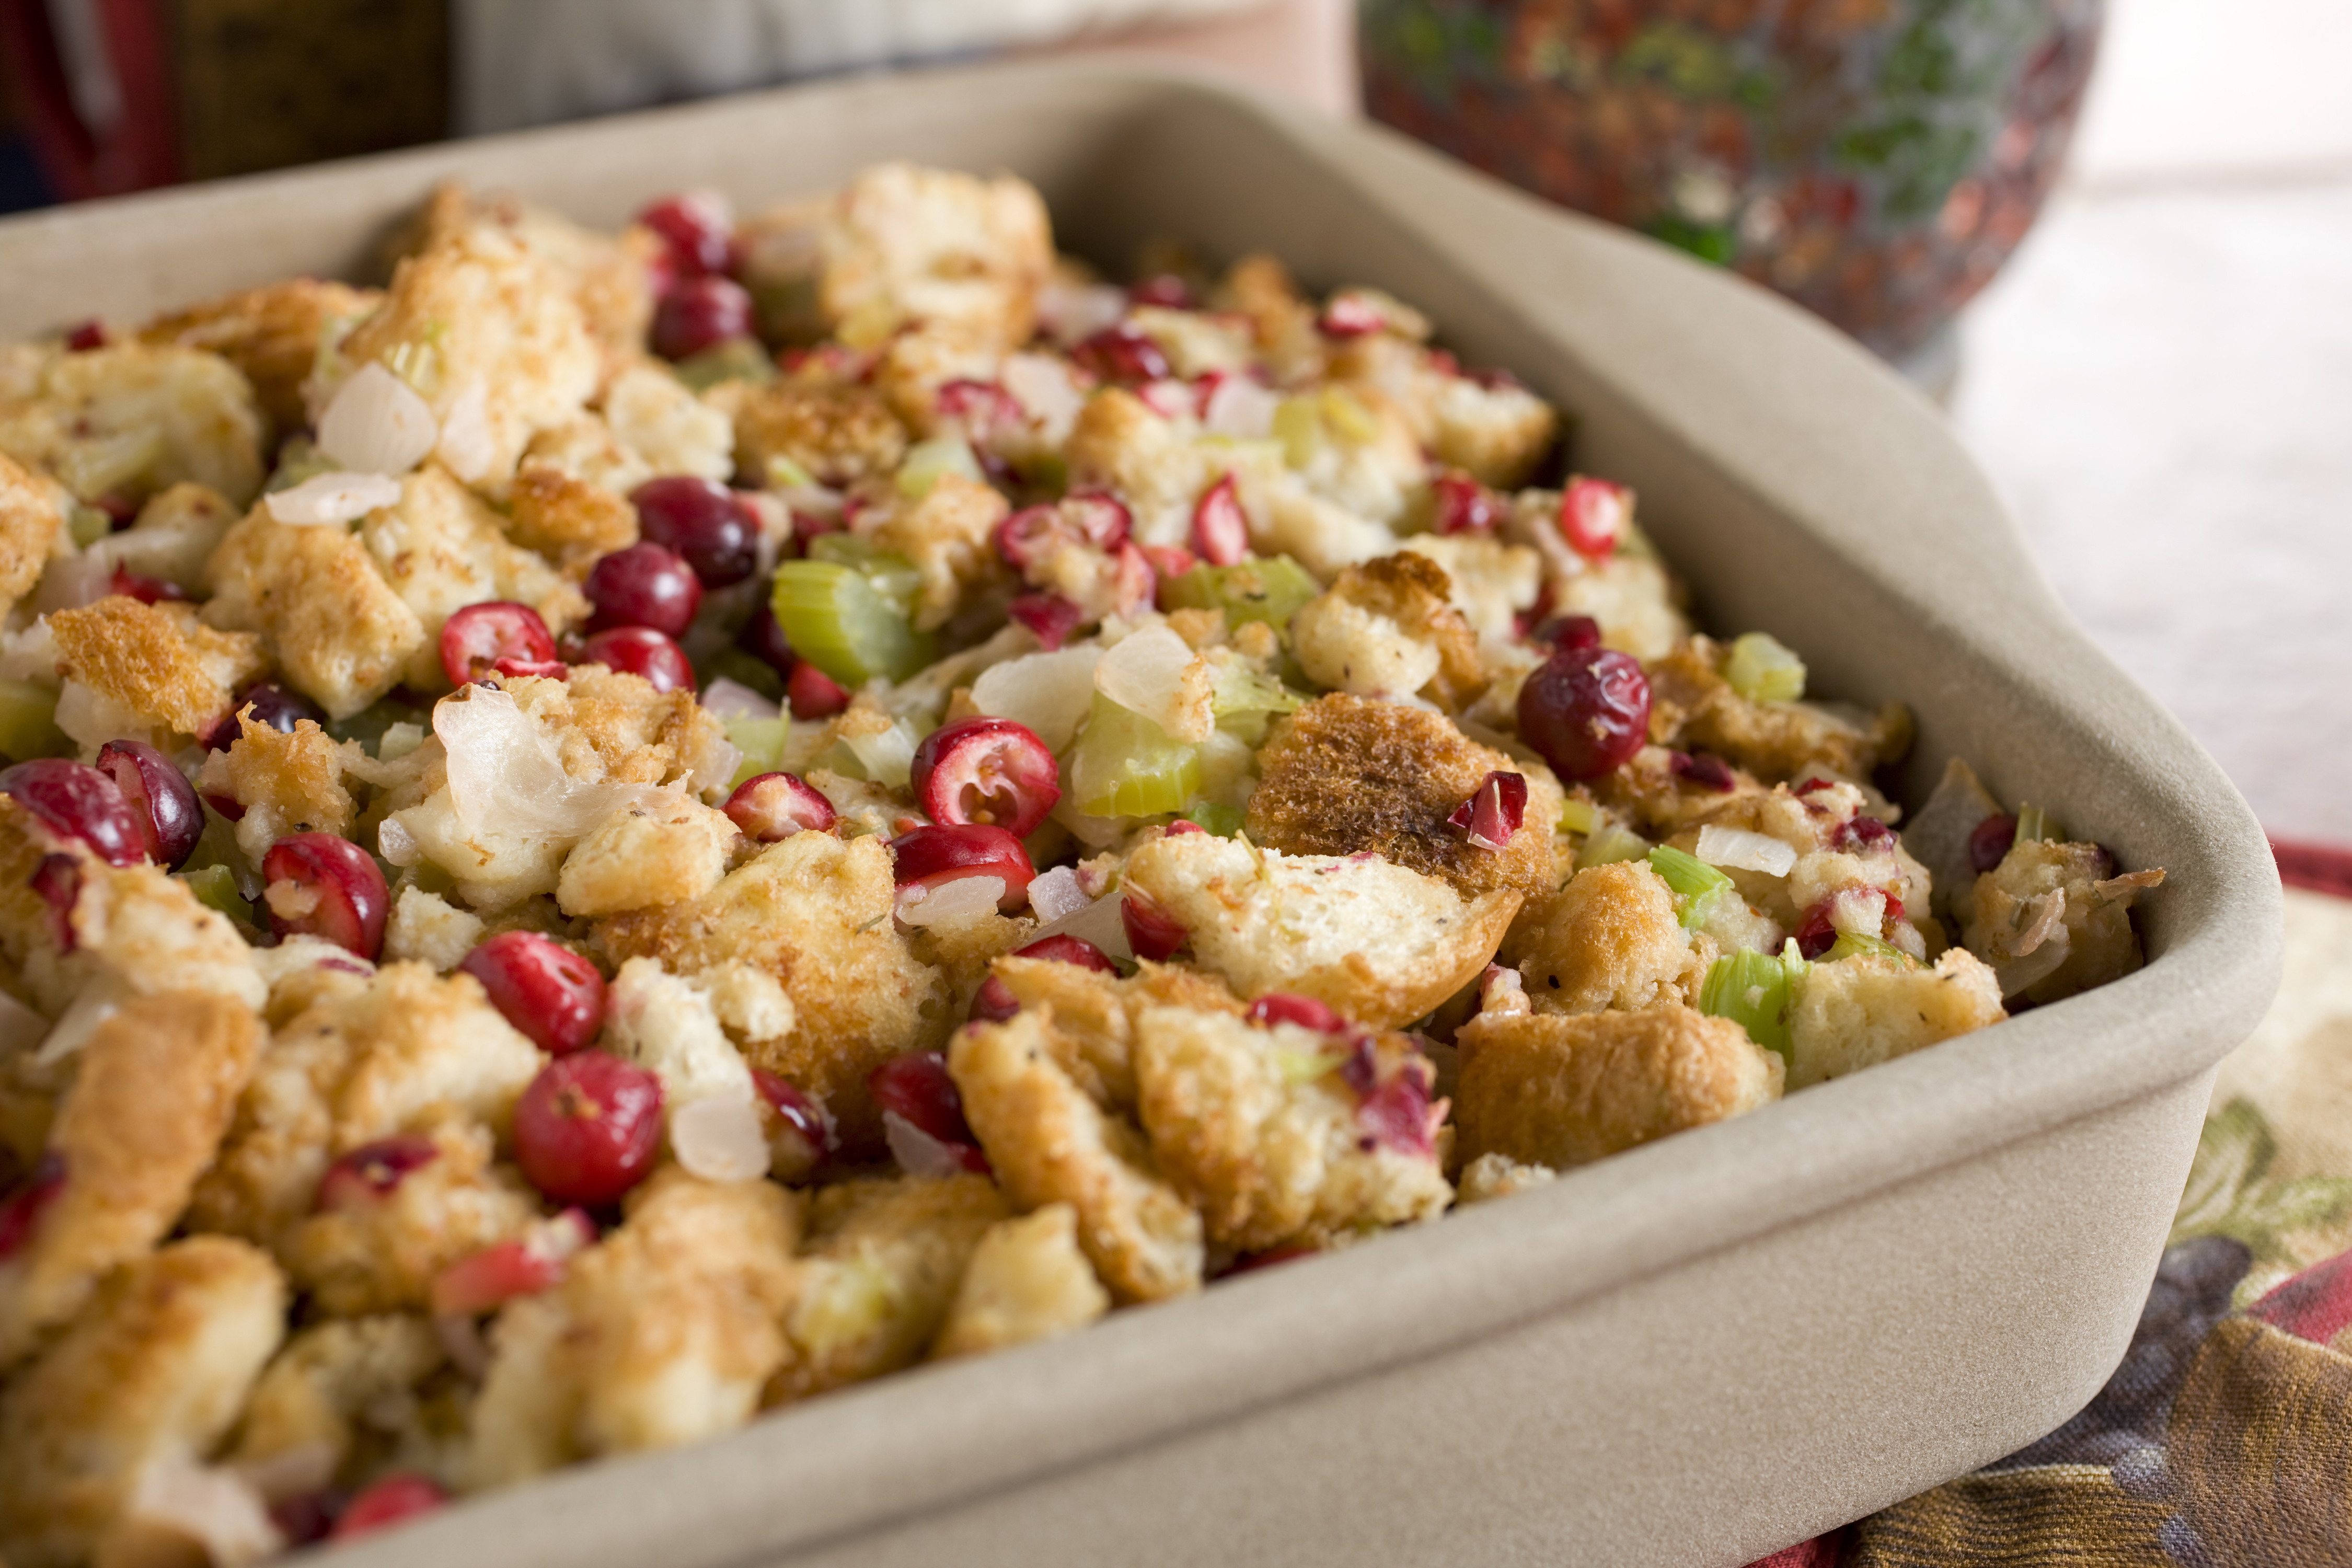 Herbed Bread Stuffing with Cranberries | Recipes & Meals - Stop&Shop